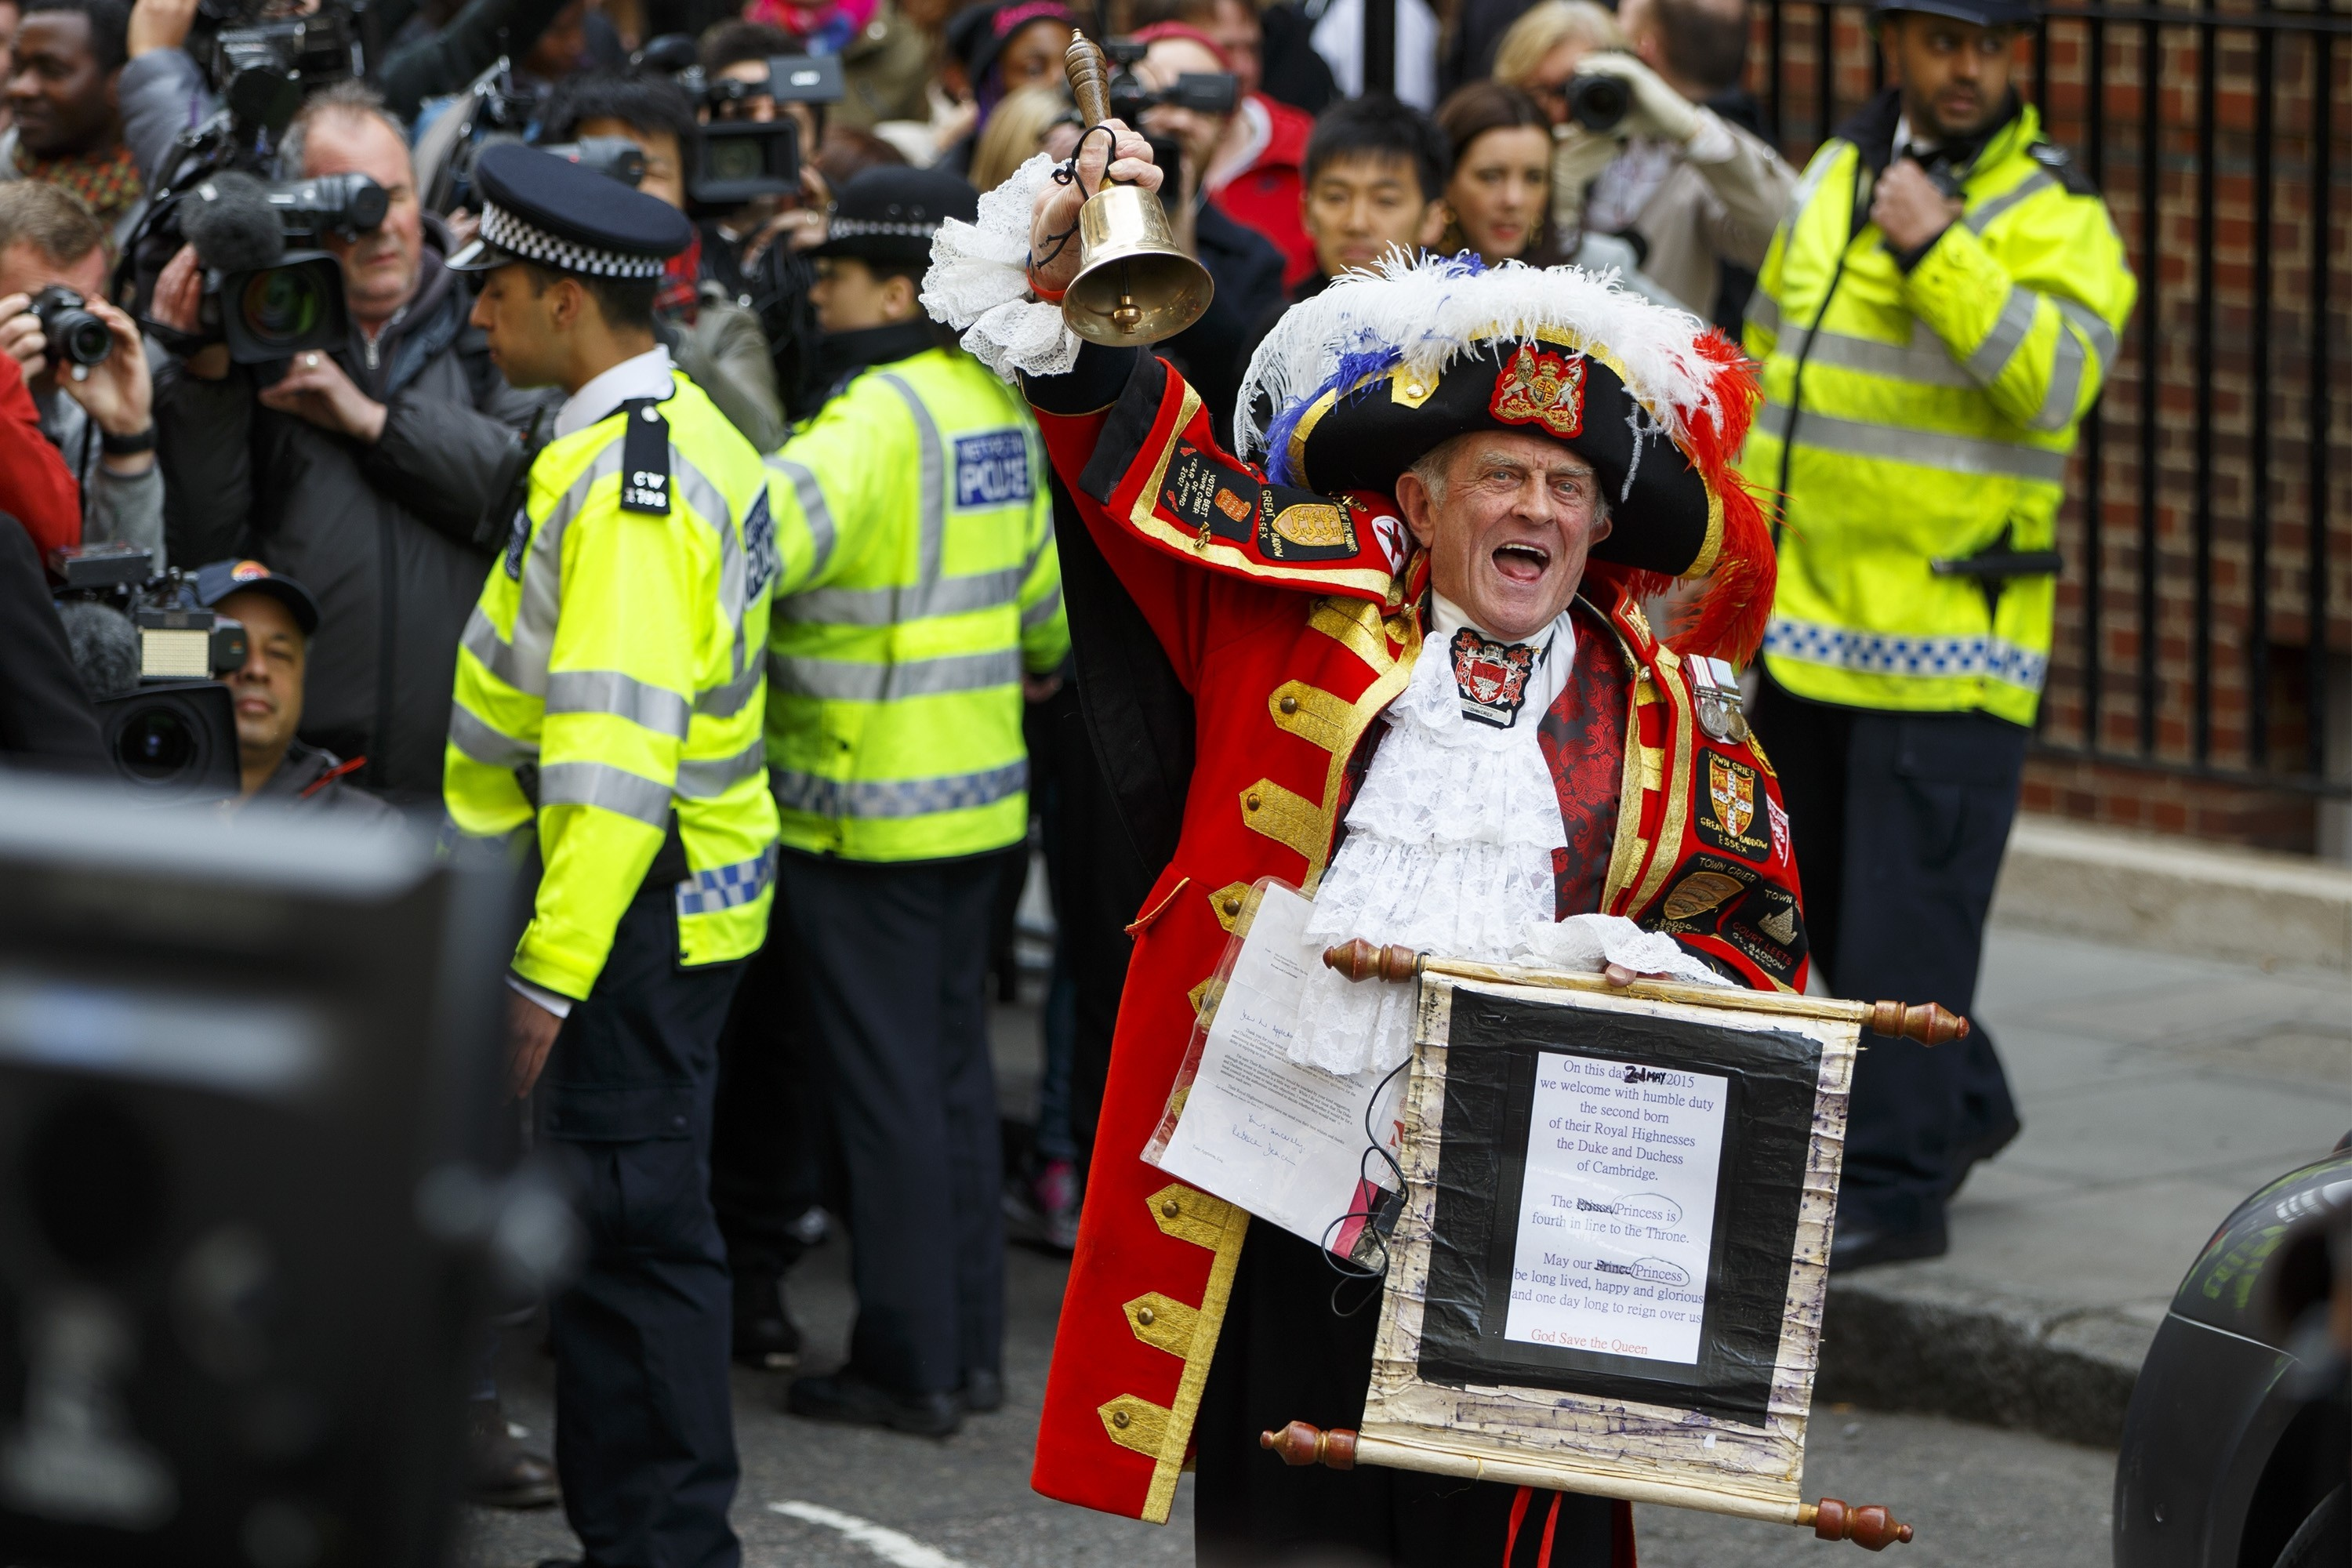 Unofficial Town Crier Tony Appleton announces The Duchess of Cambridge has given birth to a girl outside St. Mary's Hospital in London, England on May 2, 2015. (Photo by Tolga Akmen/Anadolu Agency/Getty Images)